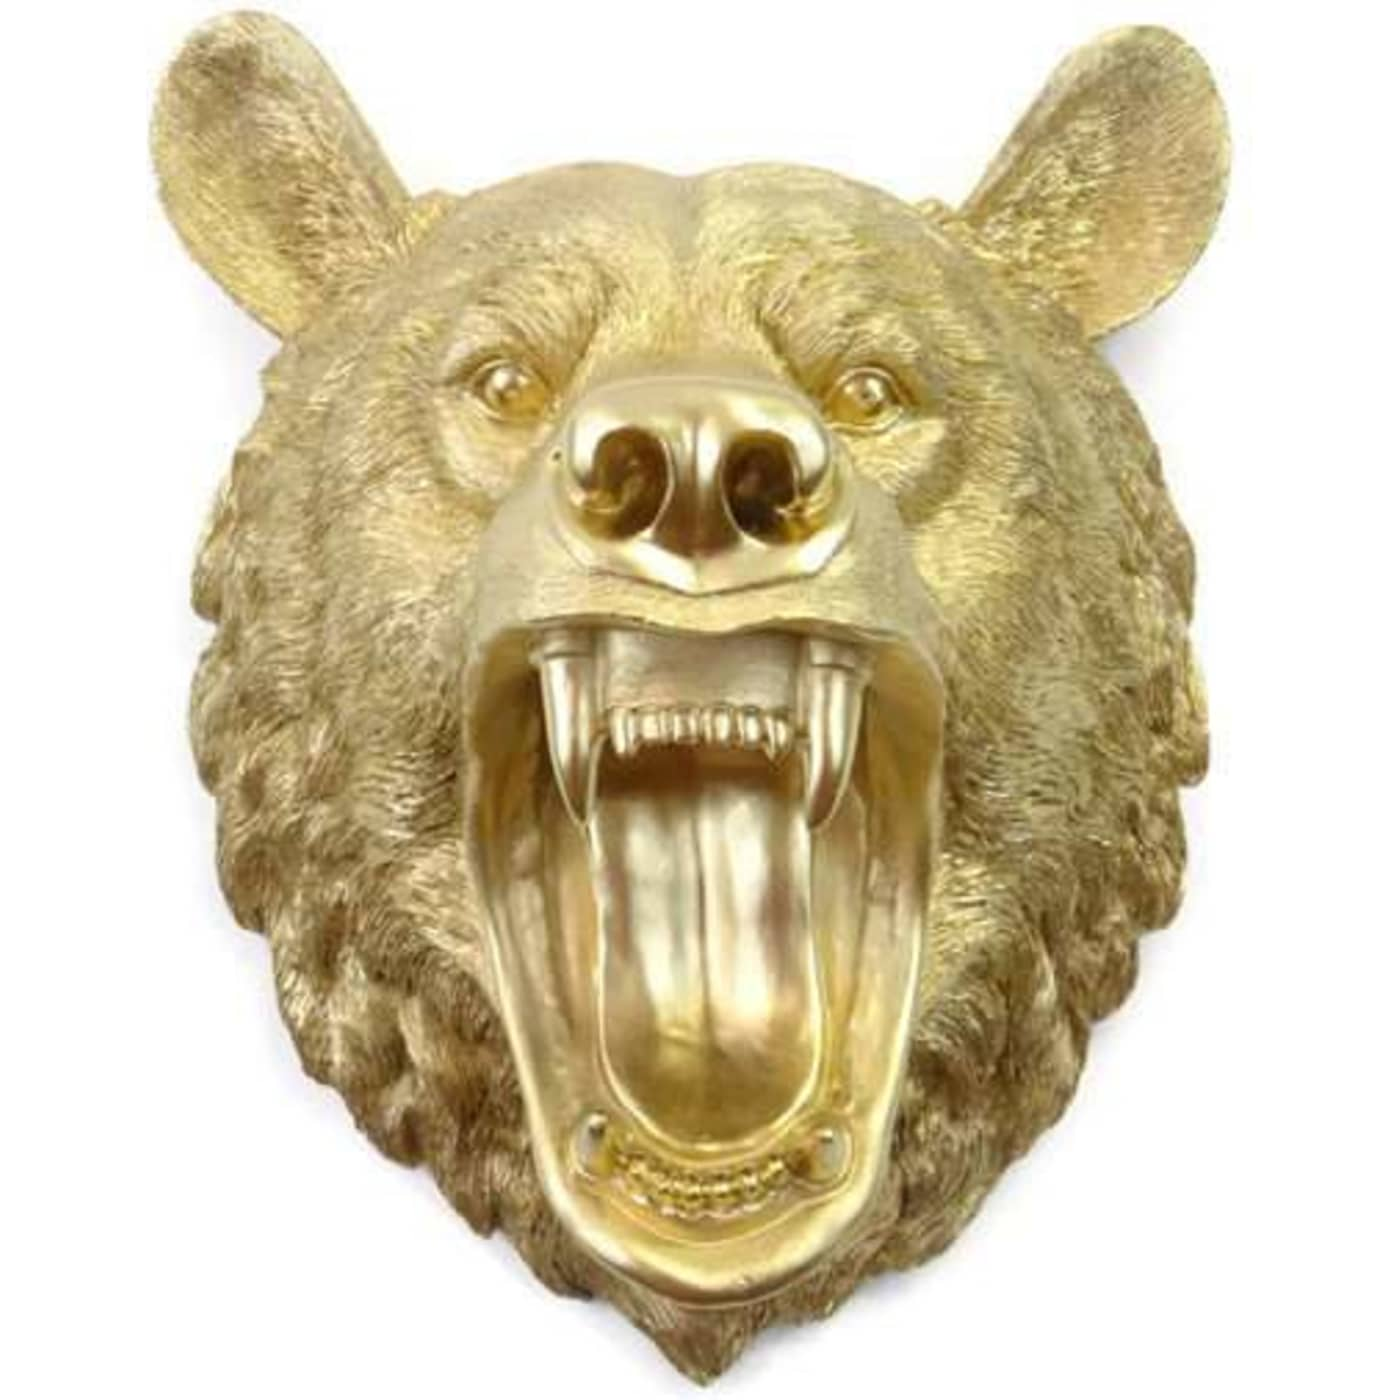 Near and Deer OMBE08 Gold Roaring Bear Wall Mount Decor | Goedeke